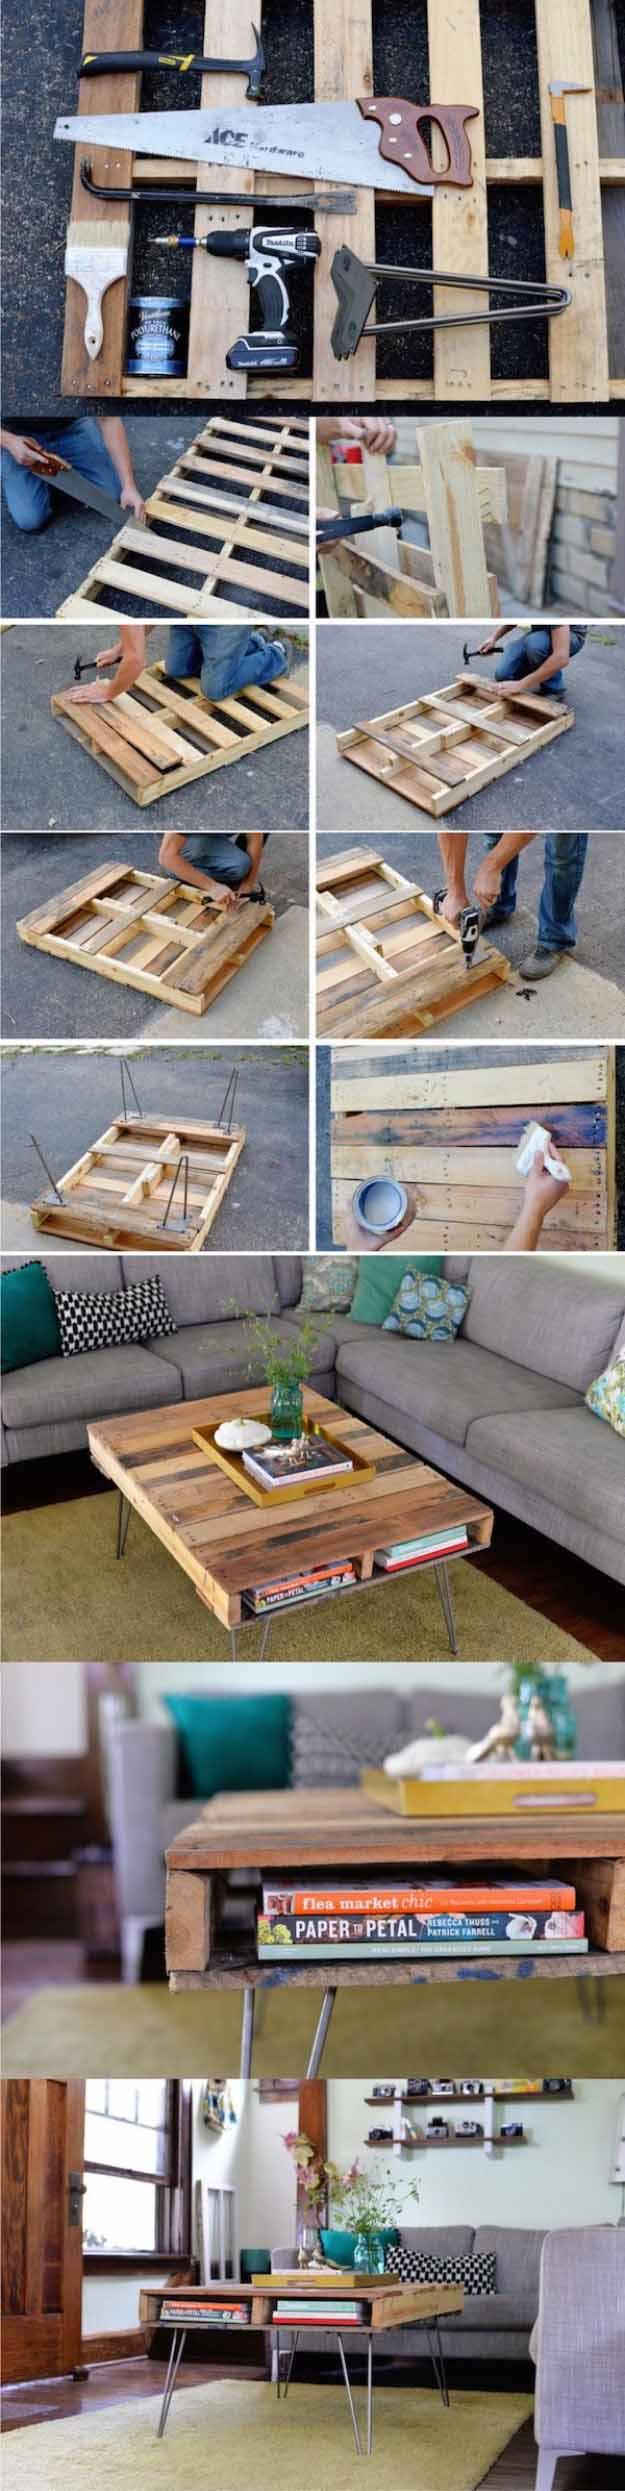 16 diy coffee table projects diy joy - Idee deco avec palette ...